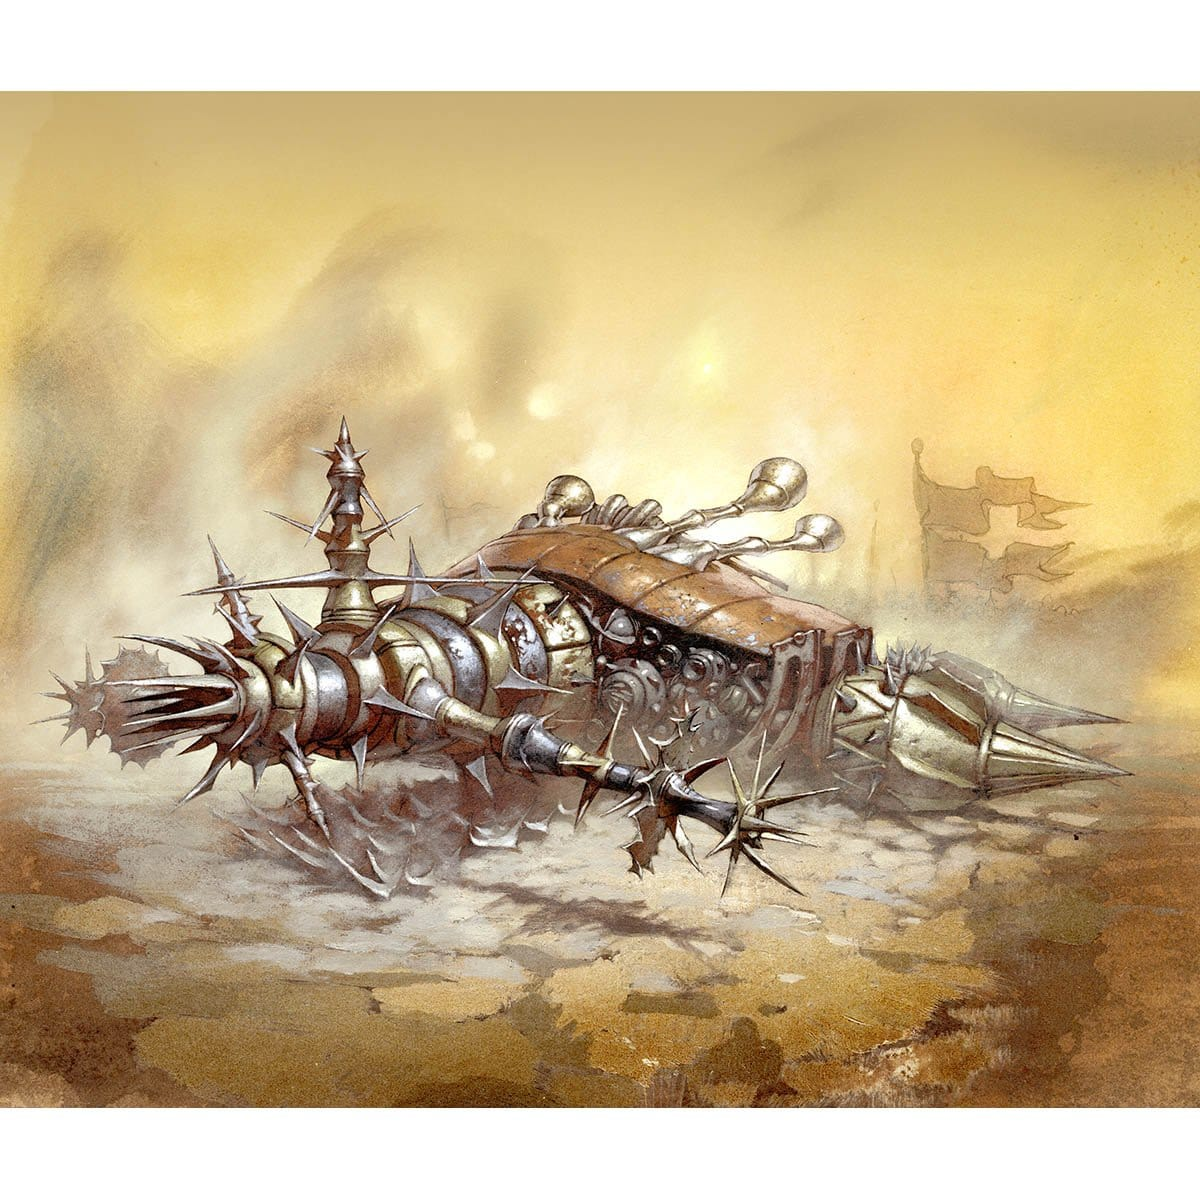 Auriok Siege Sled Print - Print - Original Magic Art - Accessories for Magic the Gathering and other card games